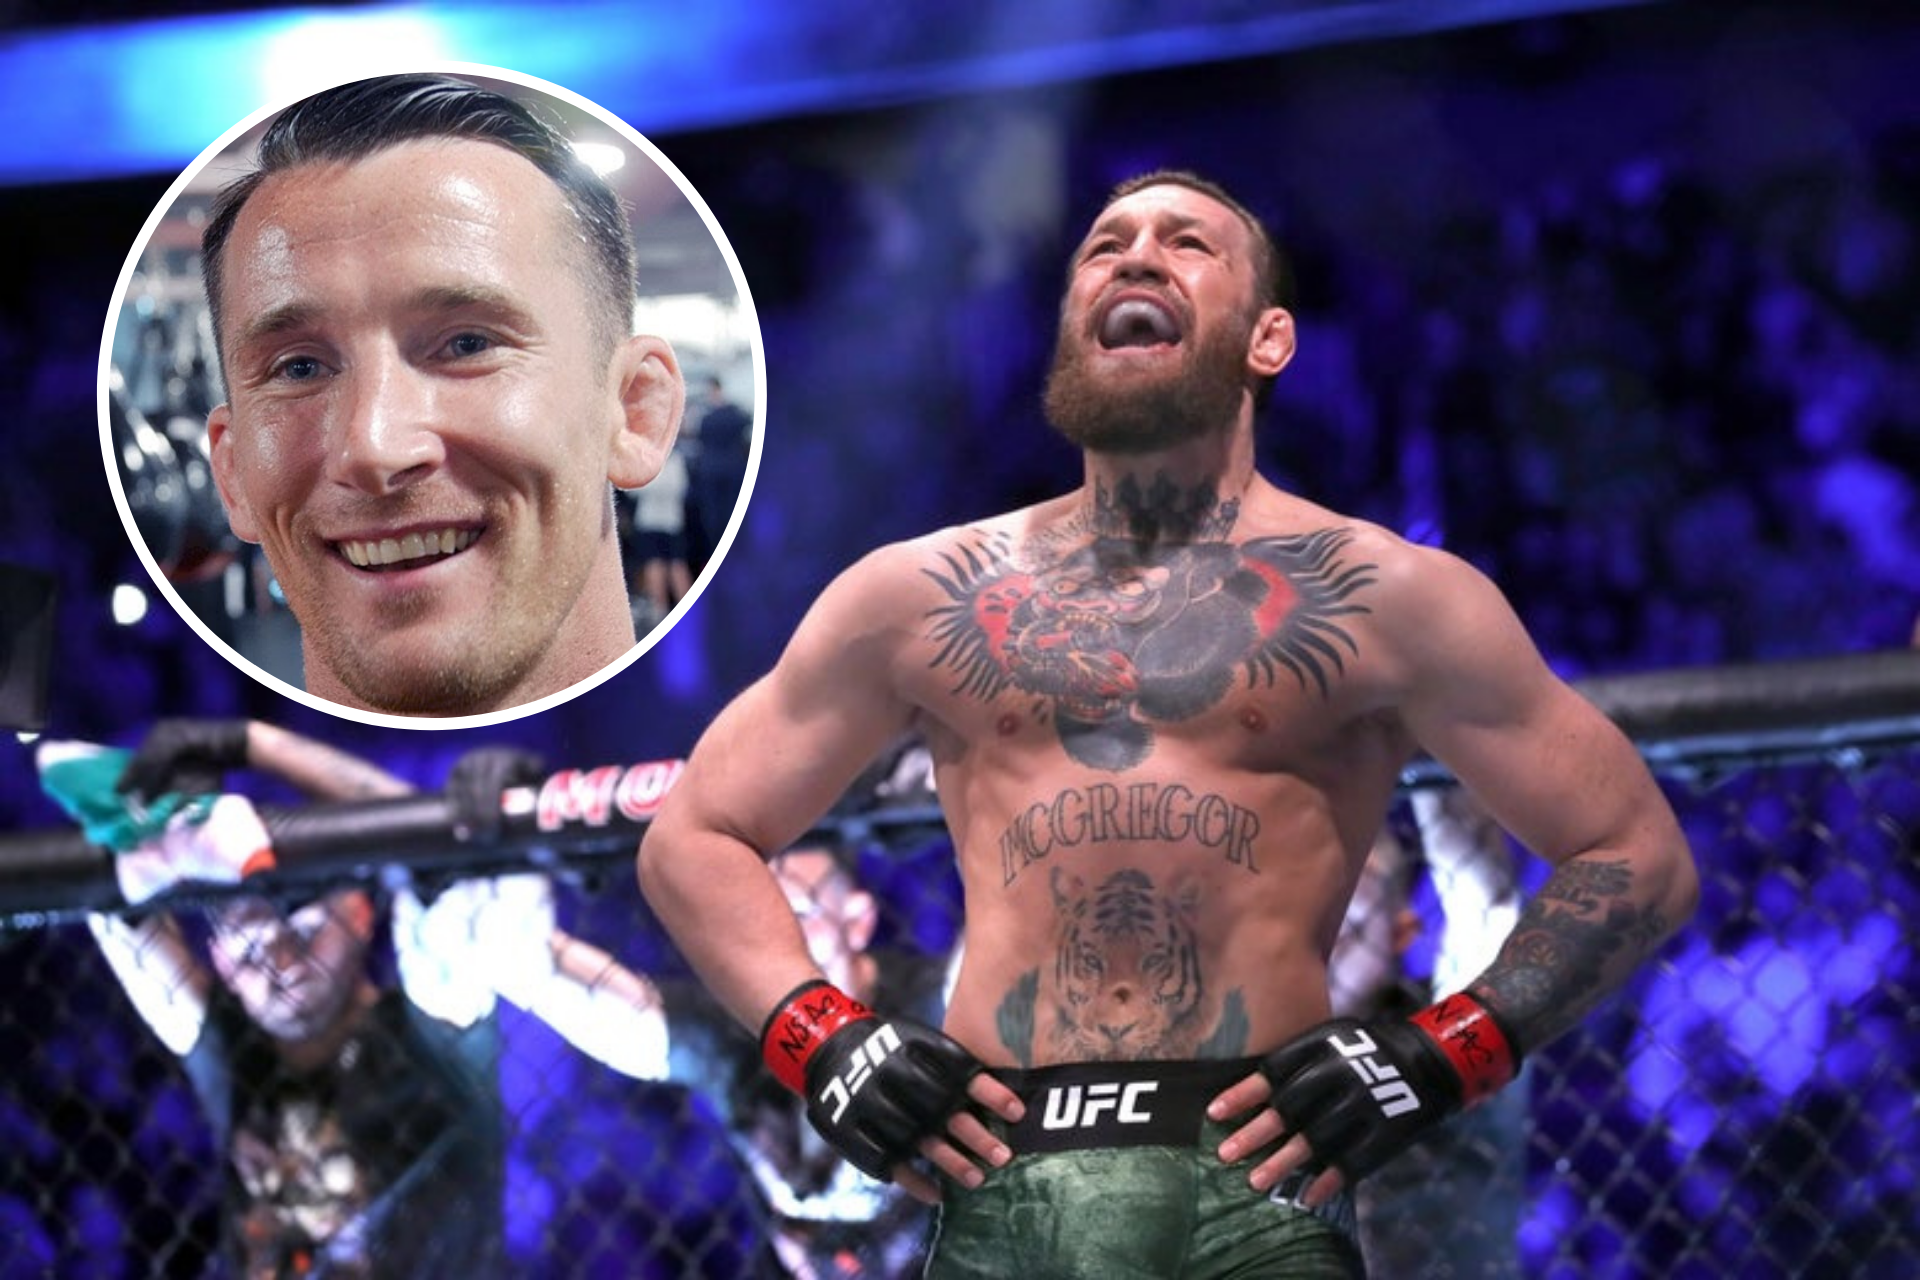 UFC News: Conor McGregor's coach says Gaethje or Masvidal could be next fight - Conor McGregor